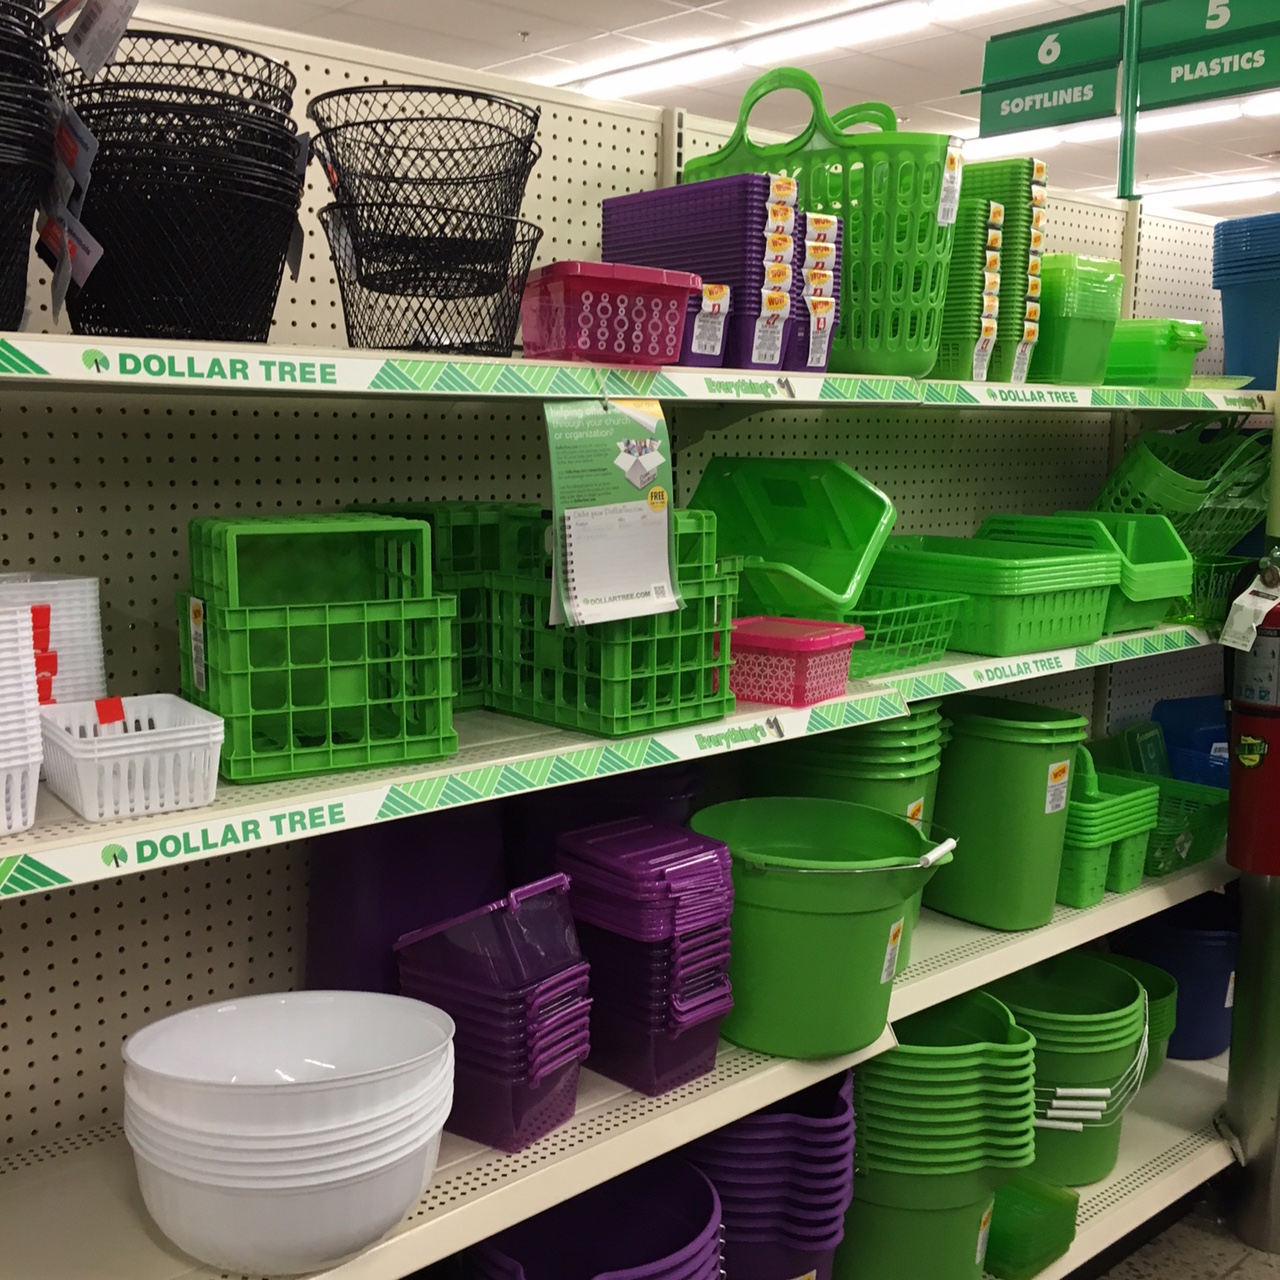 My 25 Favorite Things to Buy at Dollar Tree - Money Saving Mom®